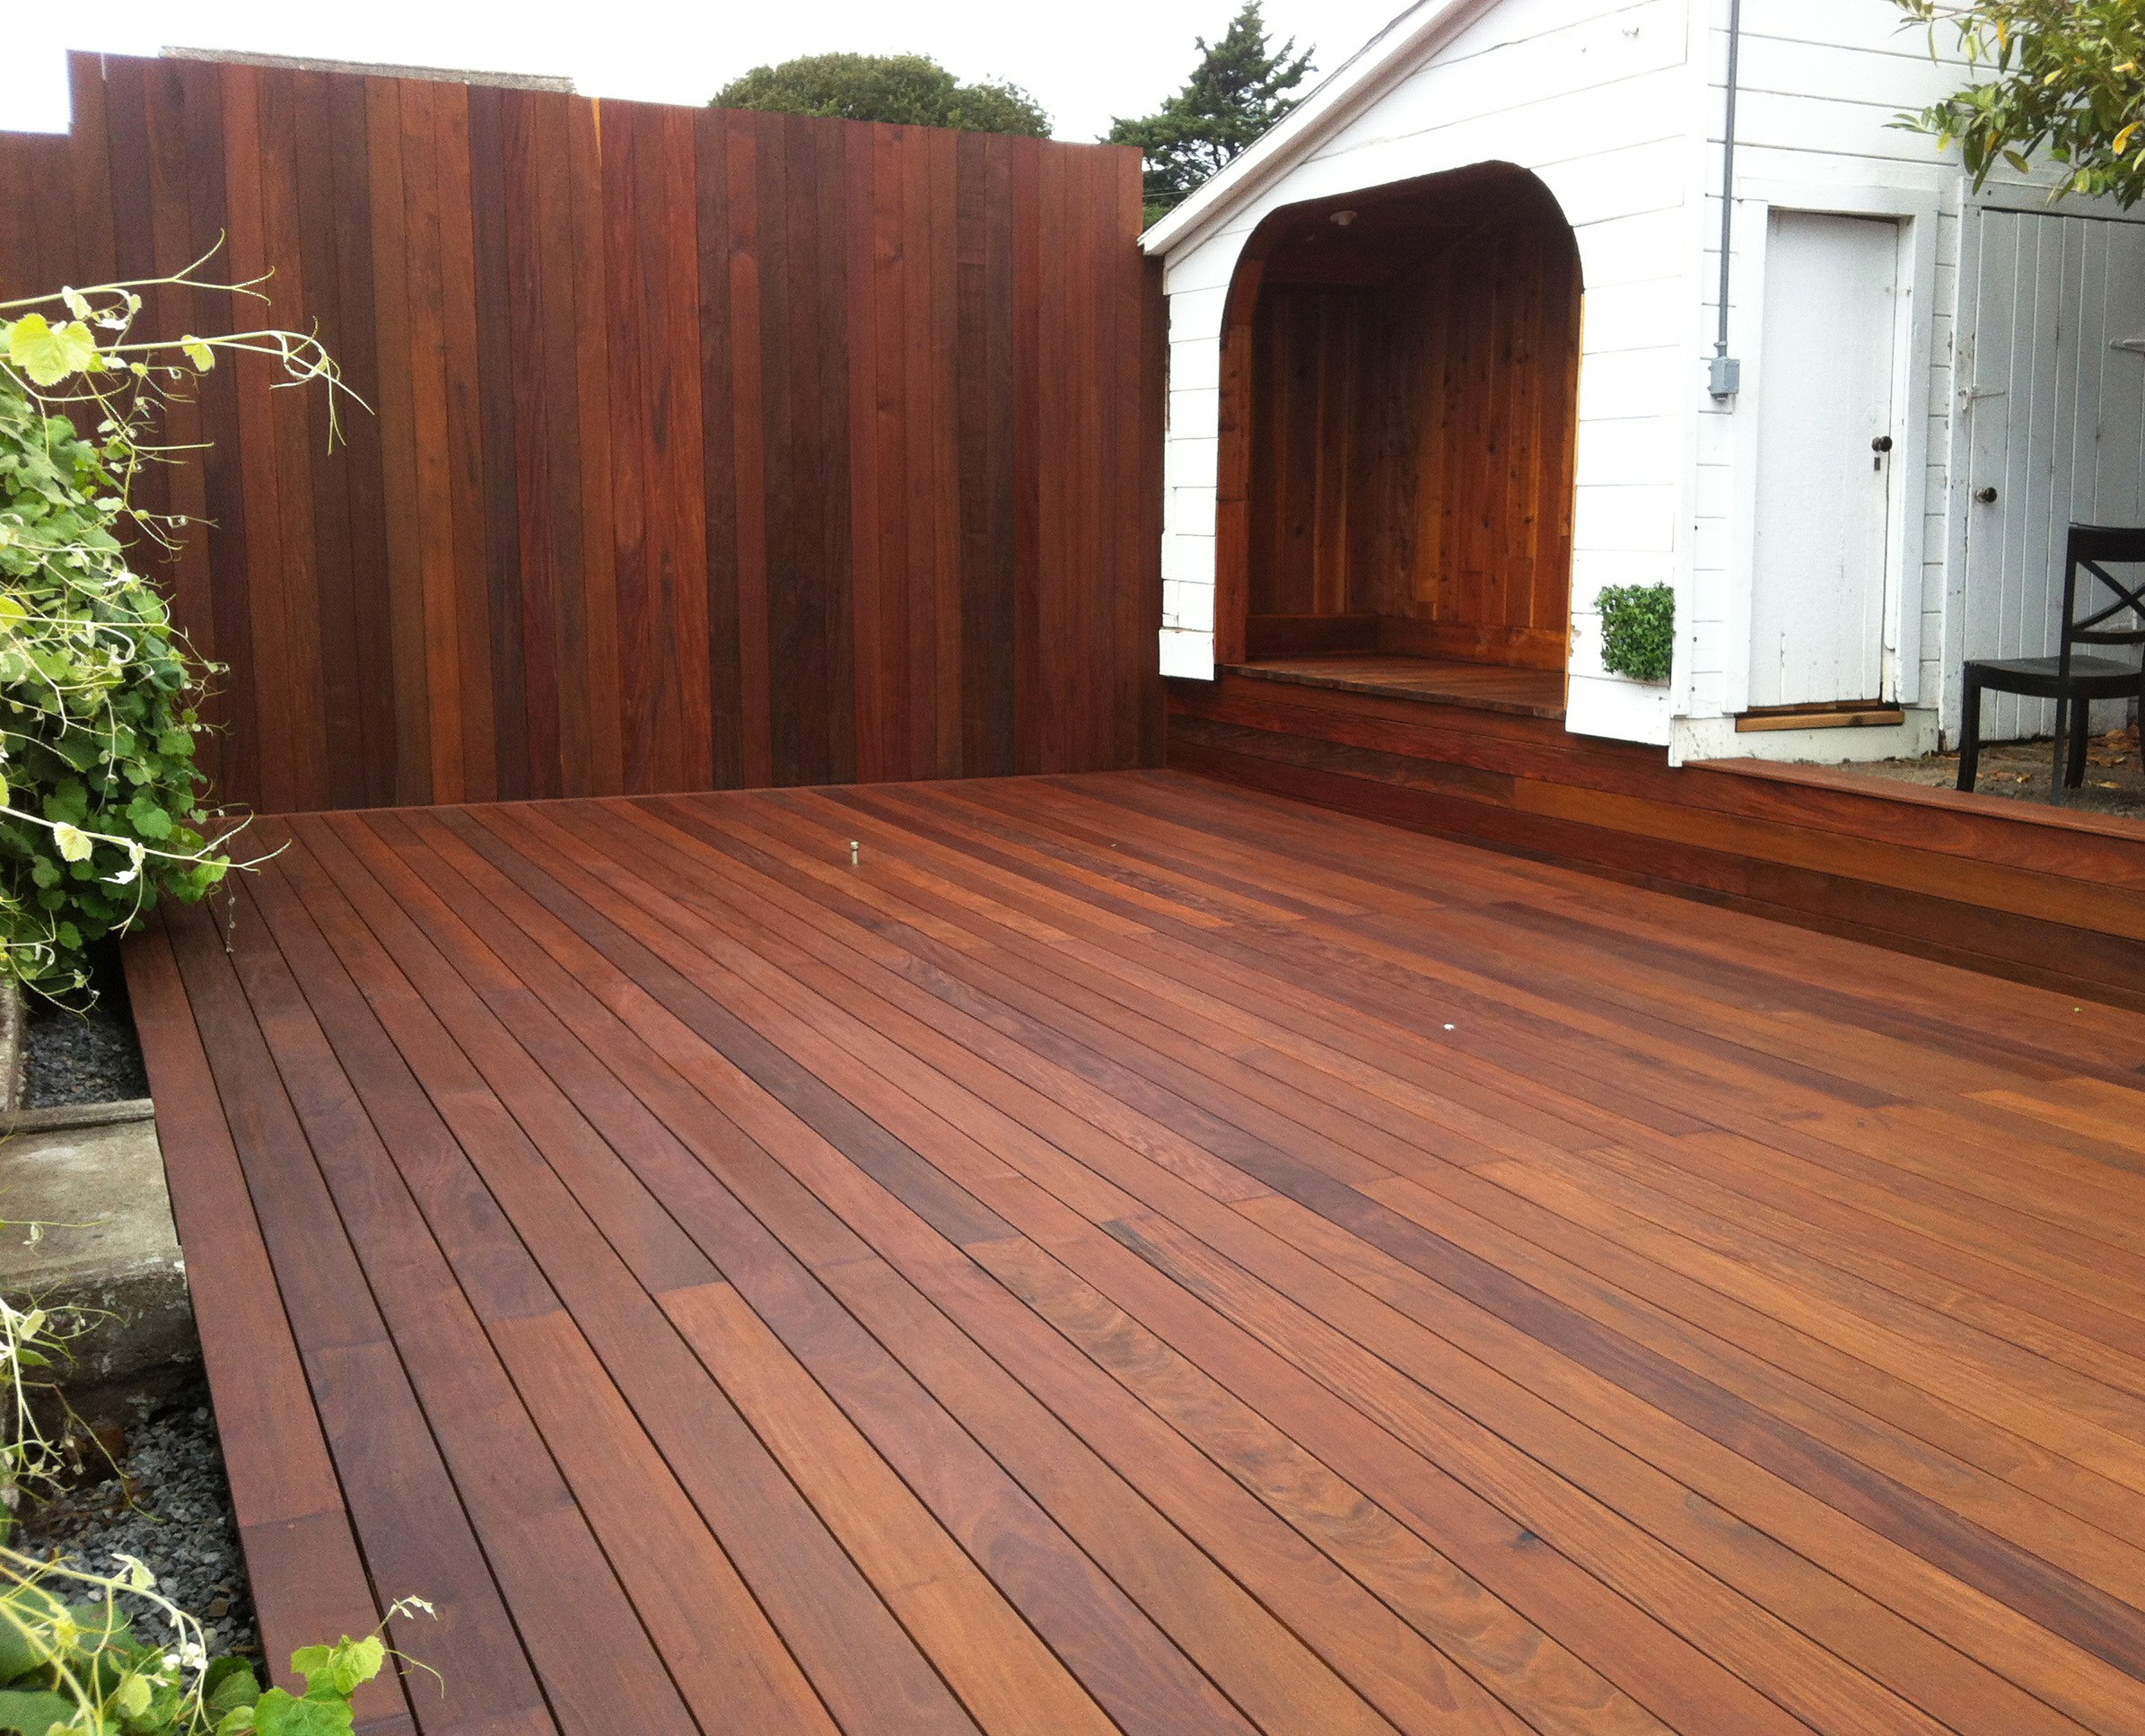 Deck building contractor sonoma marin patio covers for Ipe decking